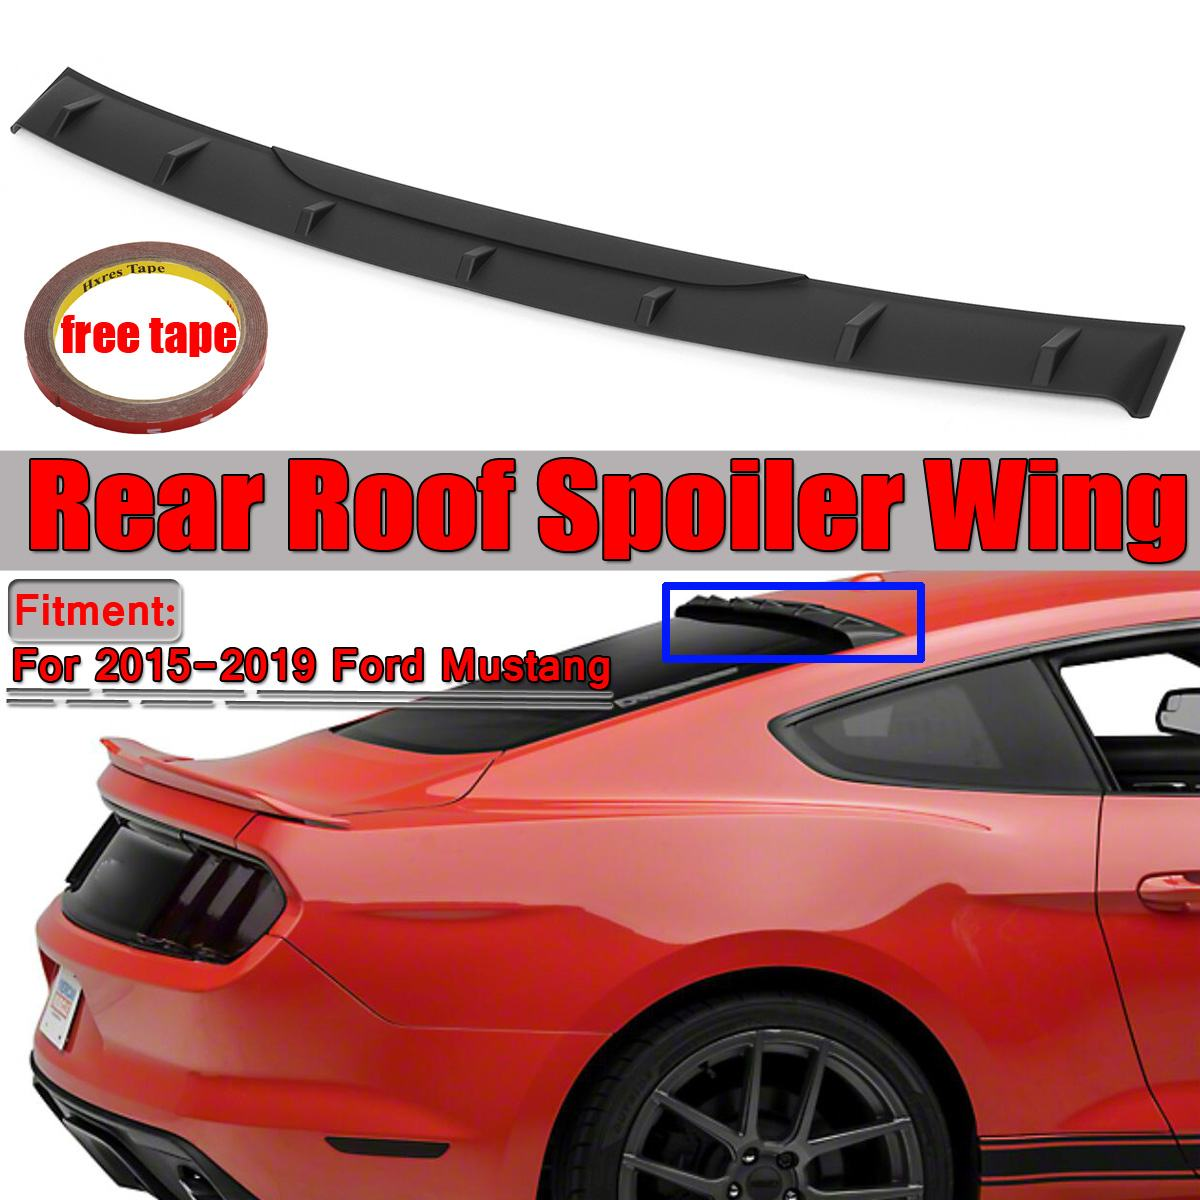 High Quality ABS Car Trunk Rear Roof Spoiler Wing For Ford For Mustang 2015 2016 2017 2018 2019 MP Style Rear Spoiler WingsHigh Quality ABS Car Trunk Rear Roof Spoiler Wing For Ford For Mustang 2015 2016 2017 2018 2019 MP Style Rear Spoiler Wings